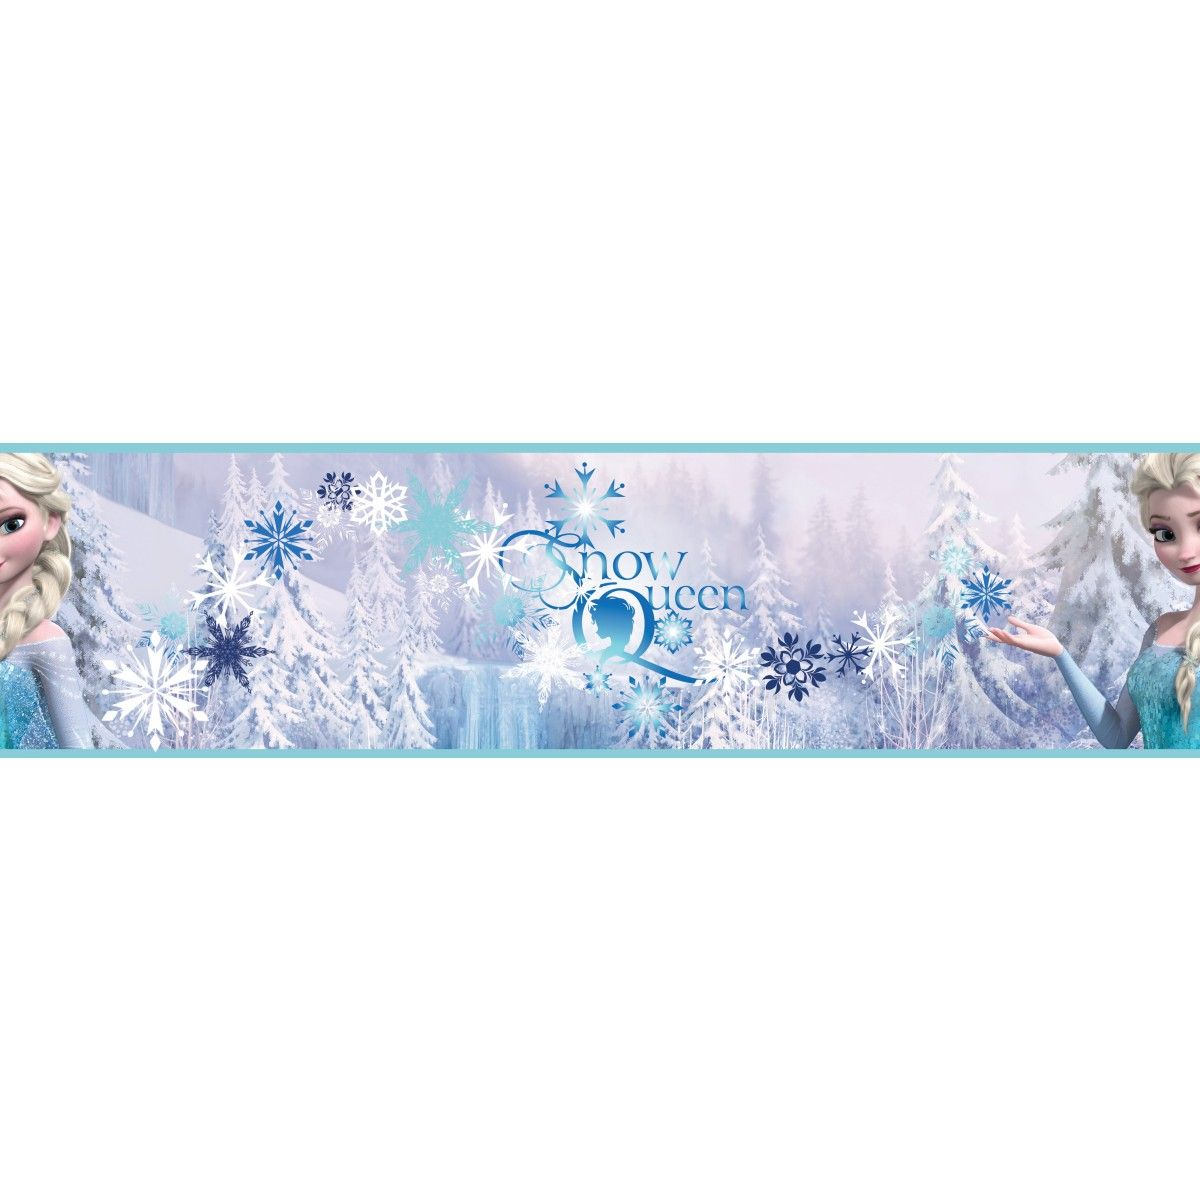 Disney Frozen Snow Queen Wallpaper Border 5m Disney